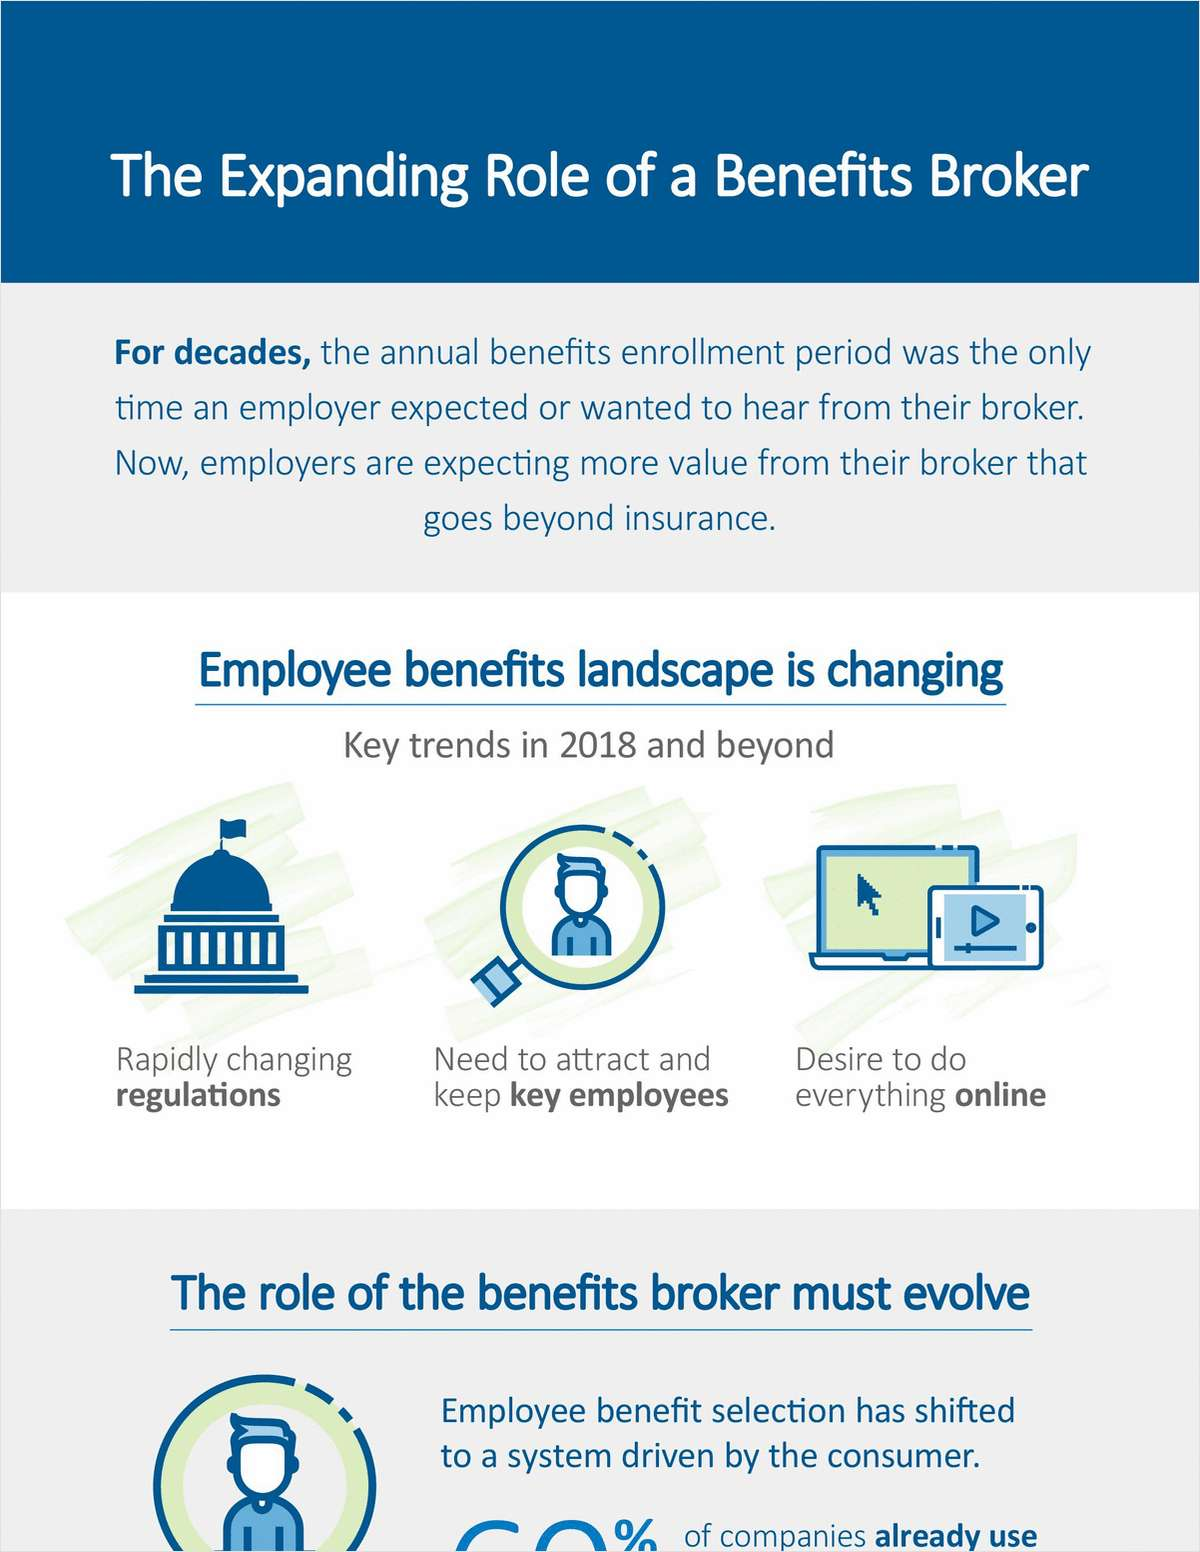 The Expanding Role of a Benefits Broker